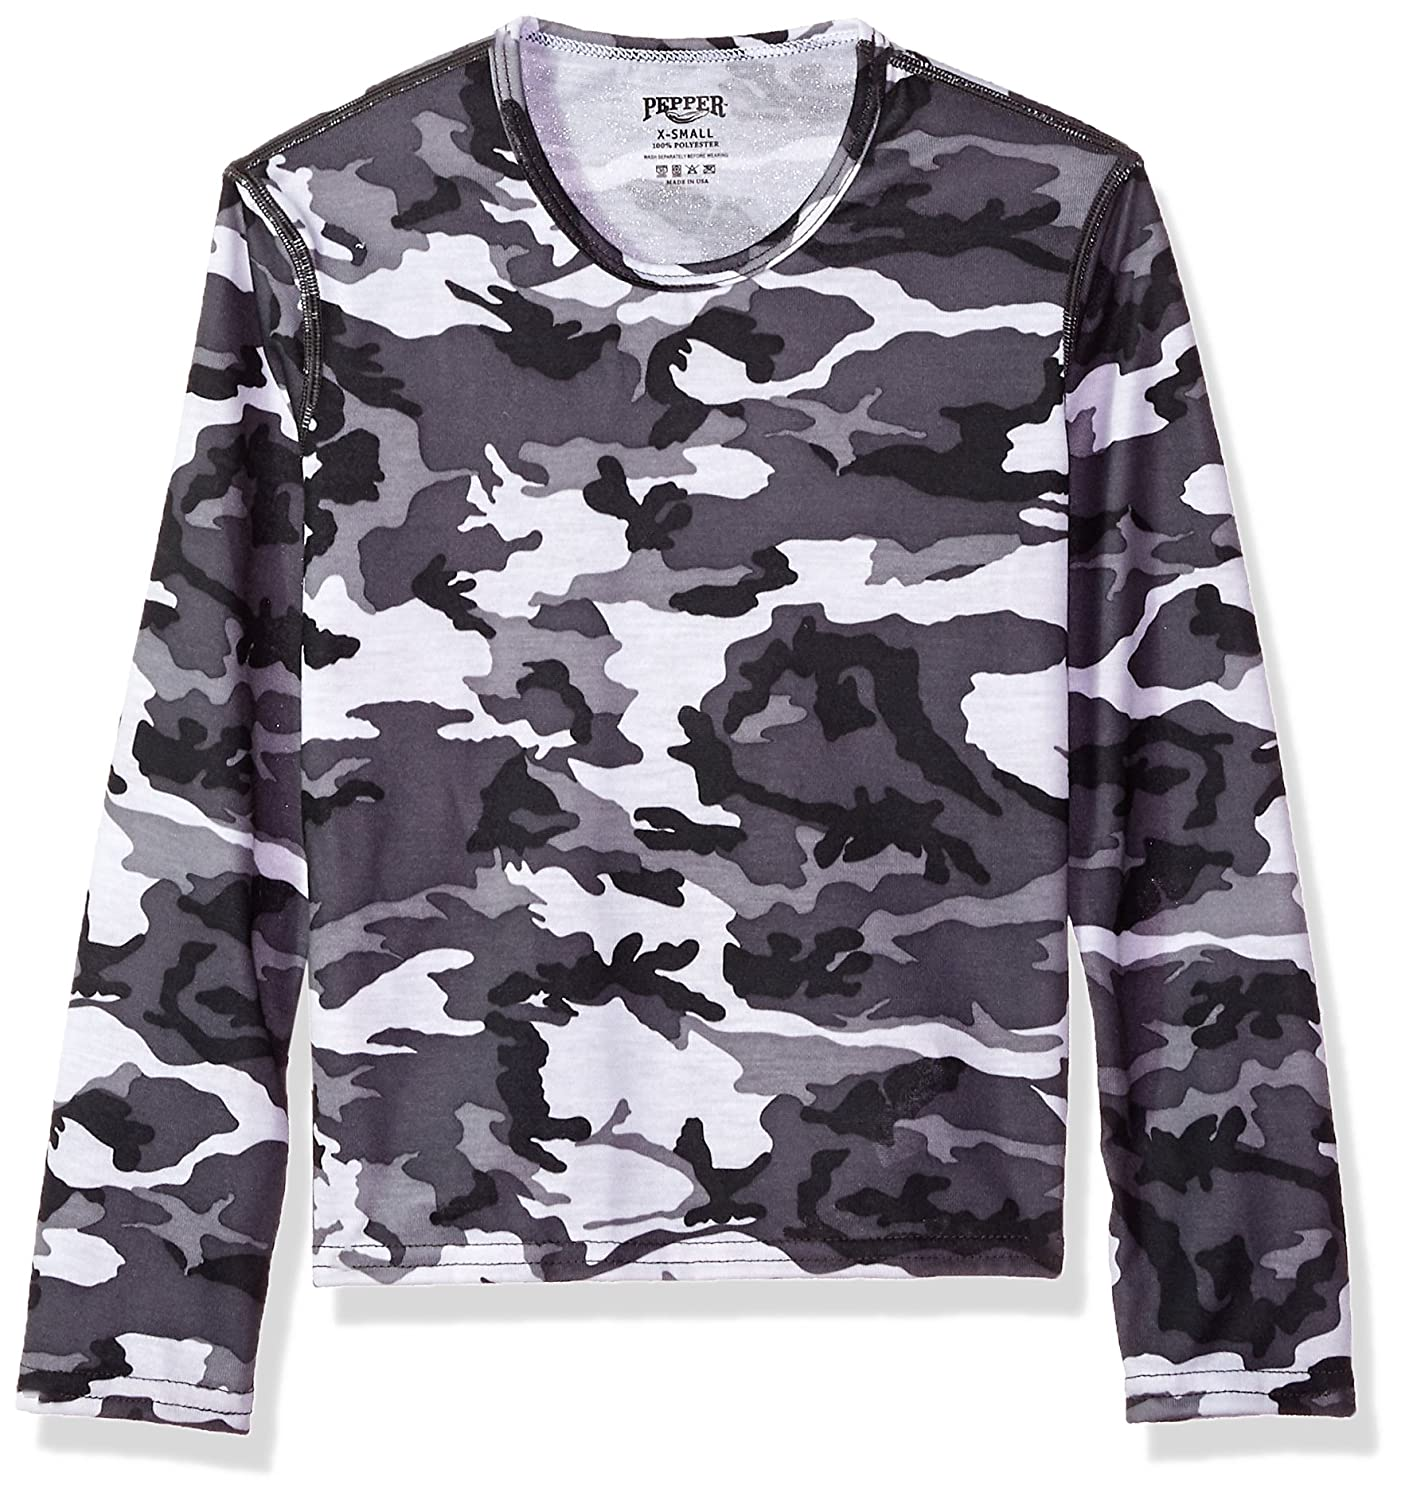 Hot Chillys Youth Pepper Skins Print Crewneck, Storm, Small PS3400P